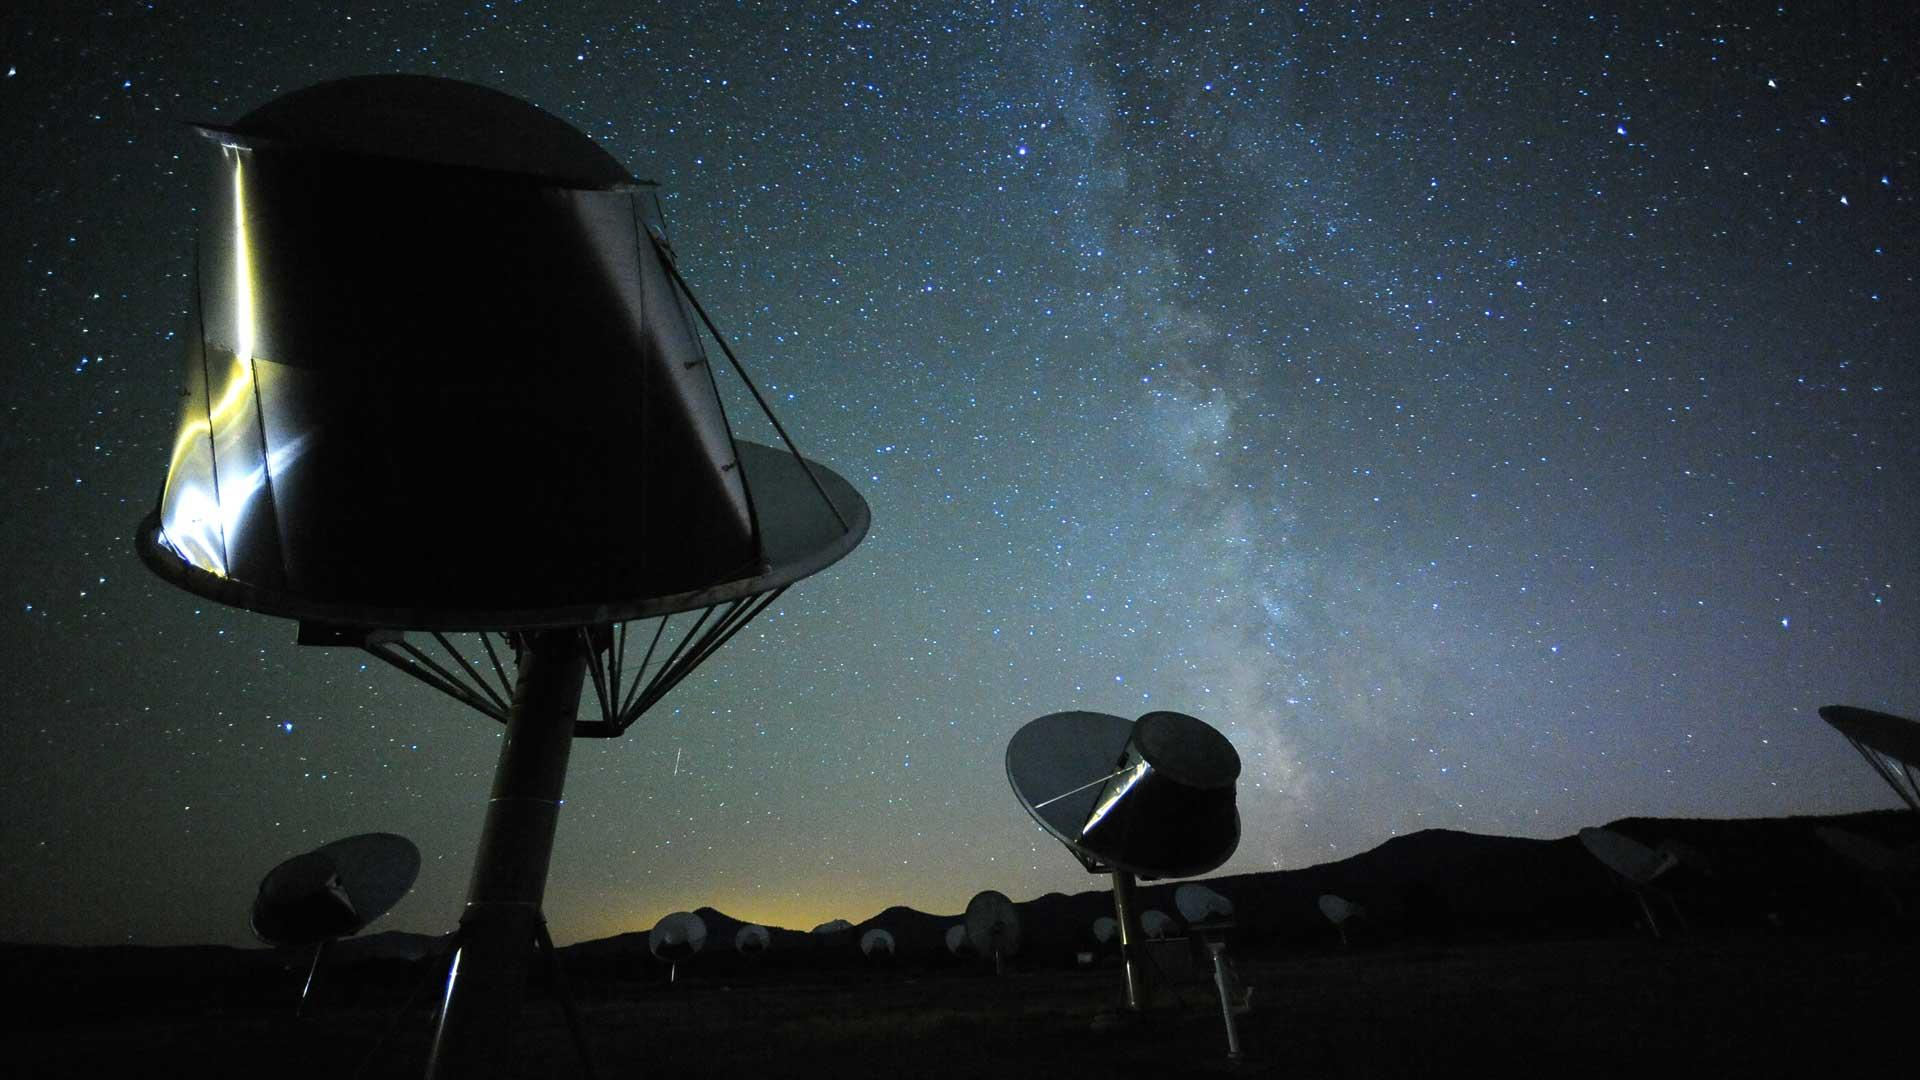 SETI is now known as a collective effort by independent organizations, government agencies, educational institutions, and individuals